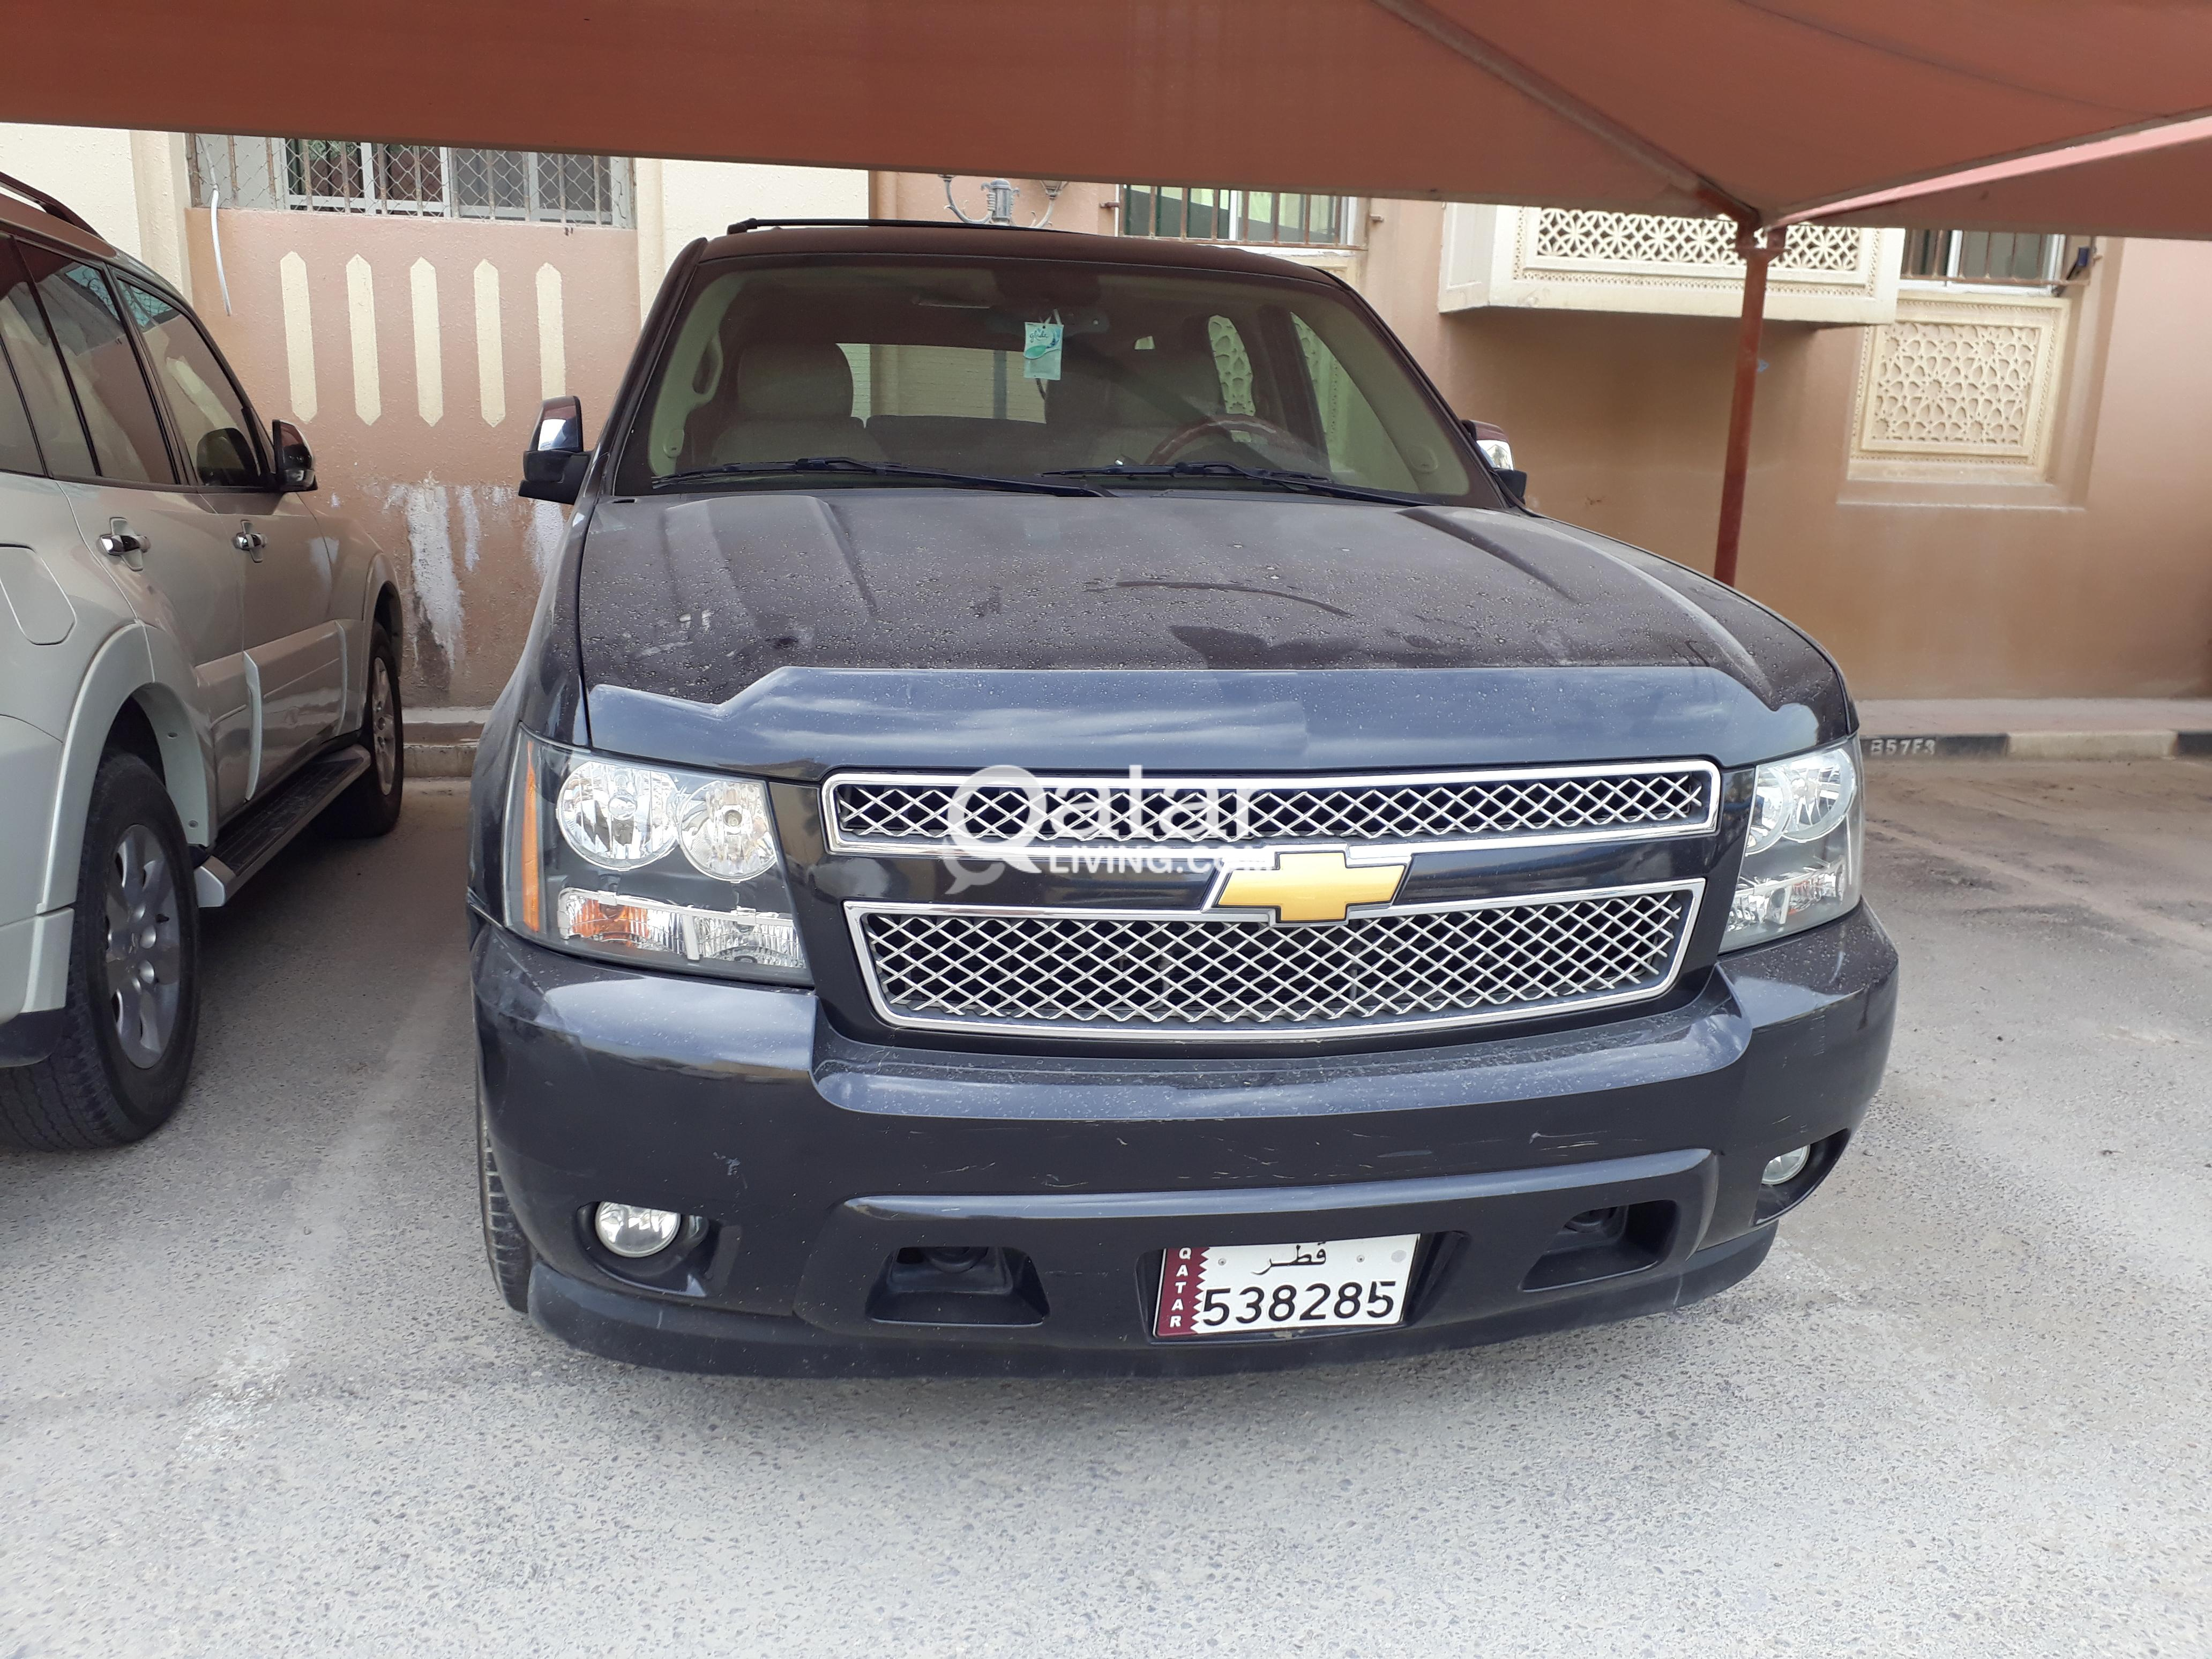 j r in auto sports sale search everett wa used tahoe for chevrolet